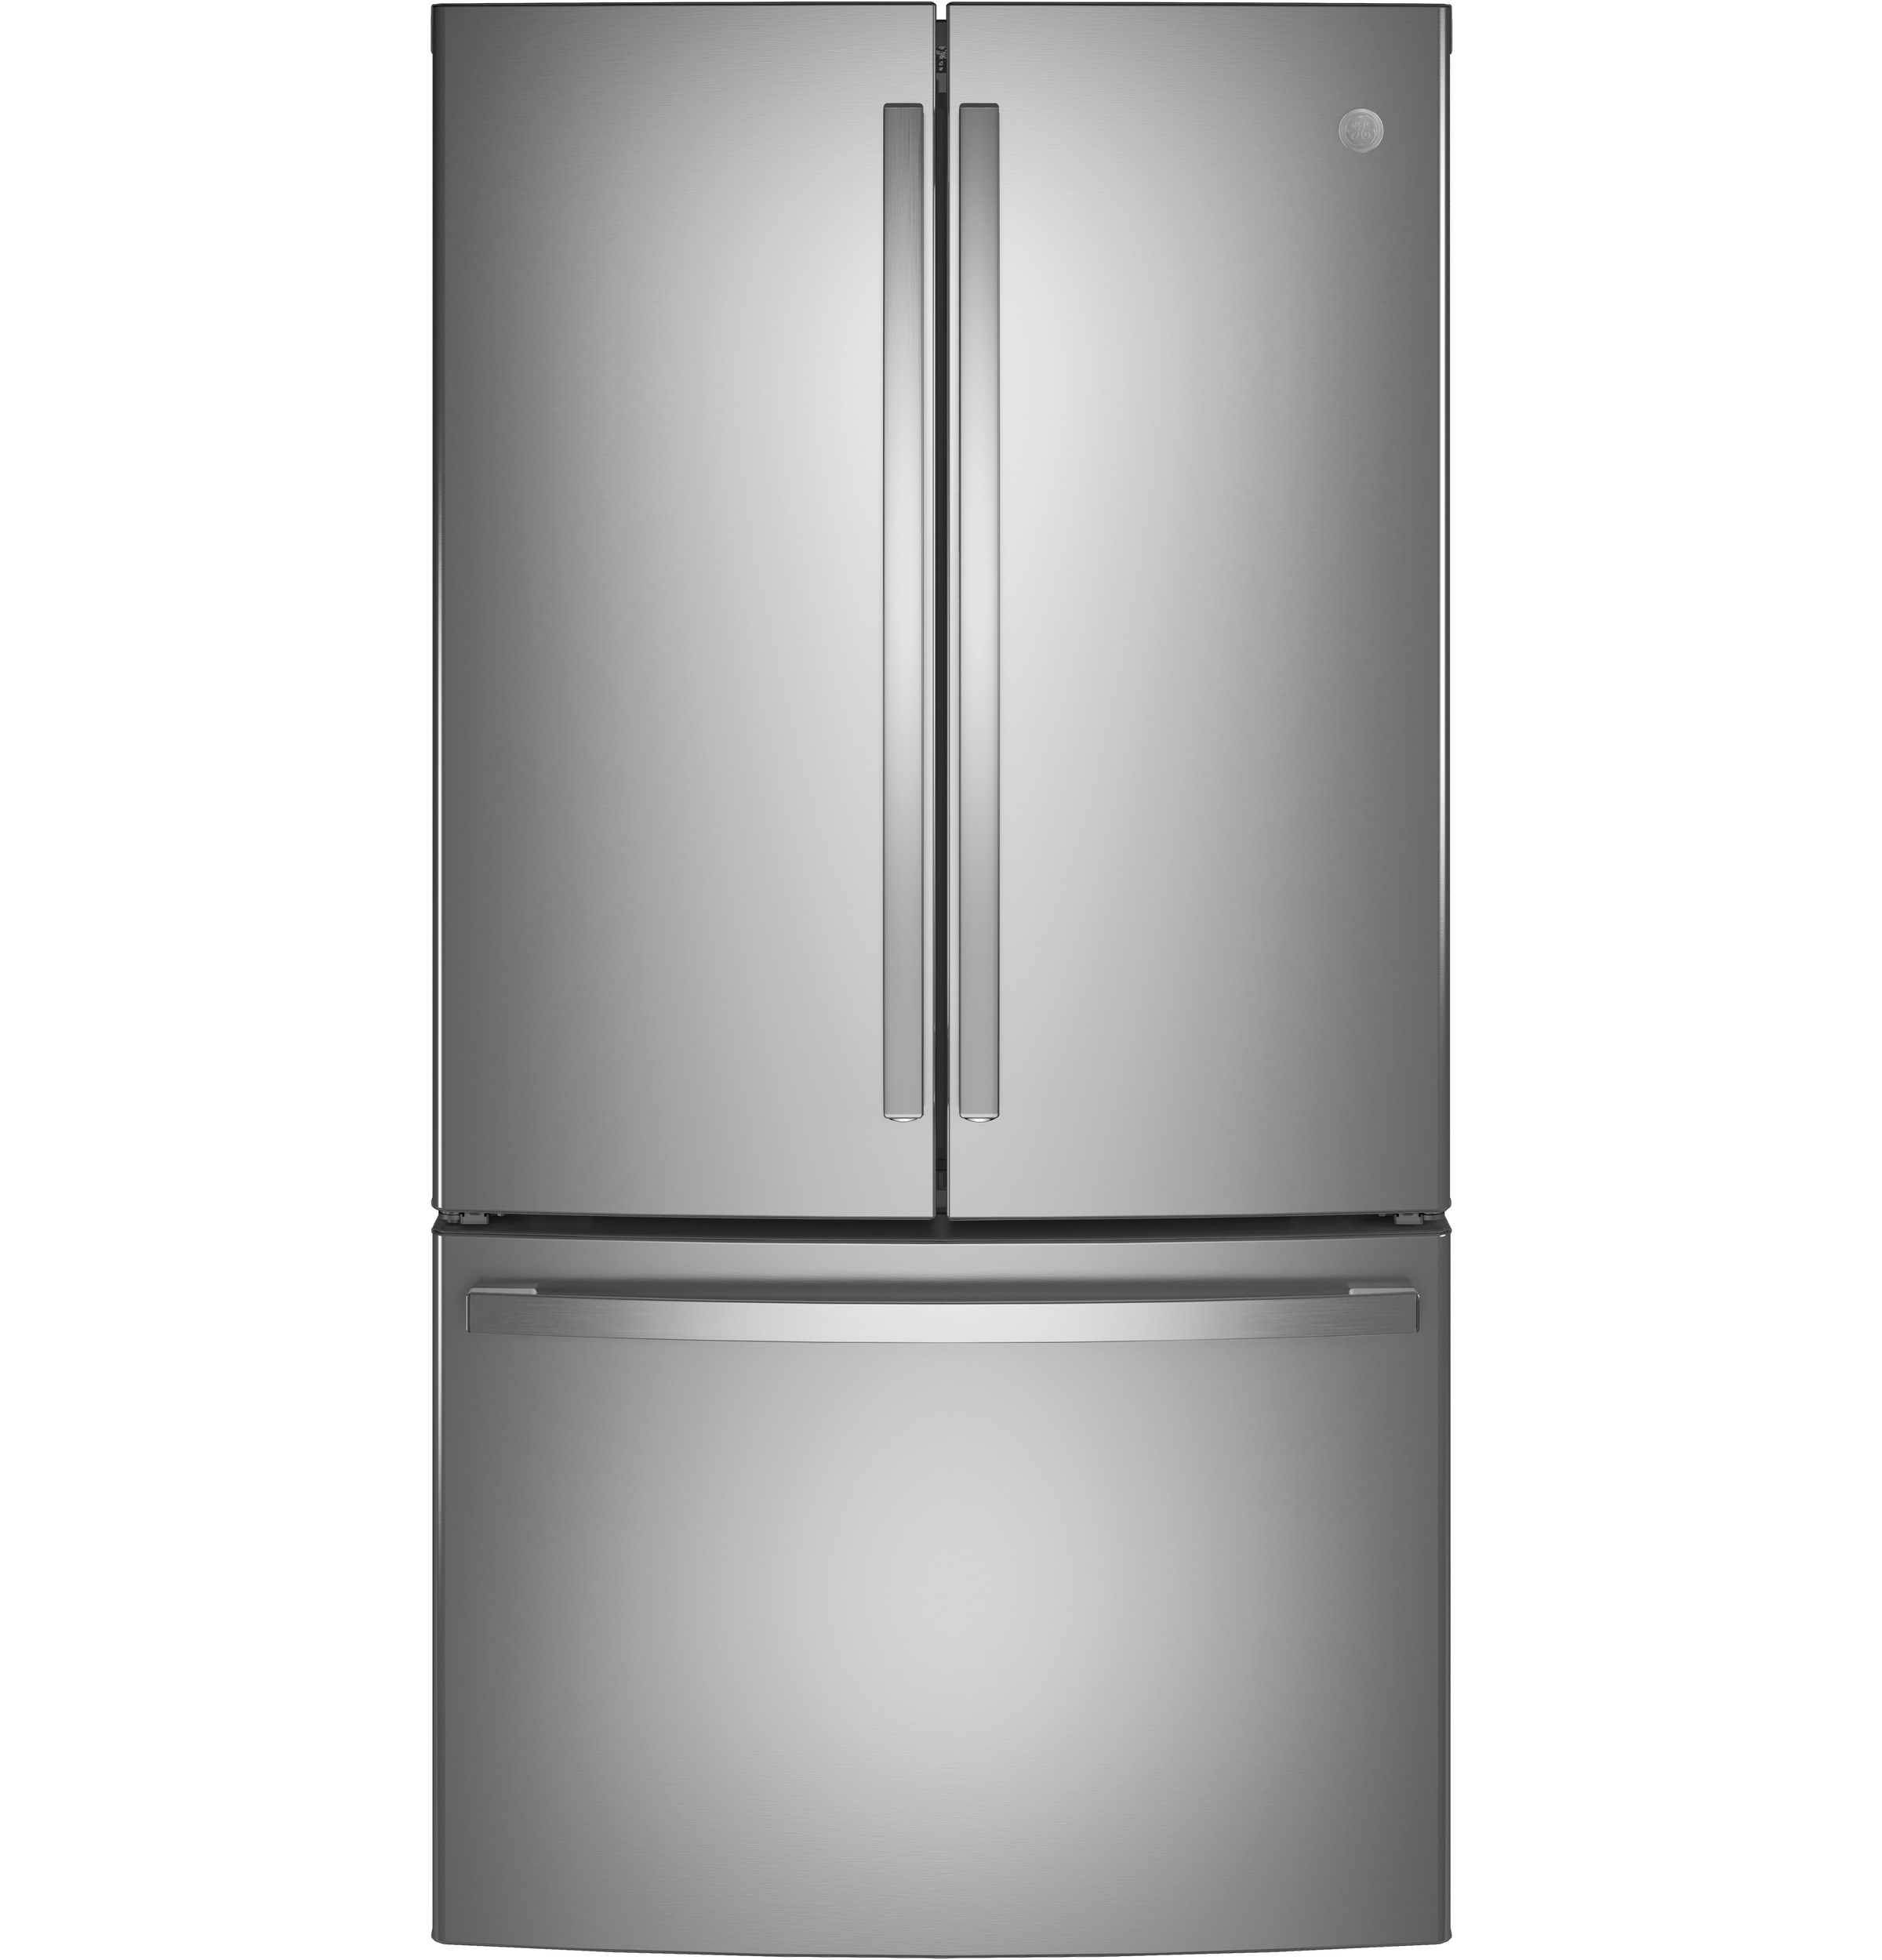 GE GE® ENERGY STAR® 28.7 Cu. Ft. Fingerprint Resistant French-Door Refrigerator